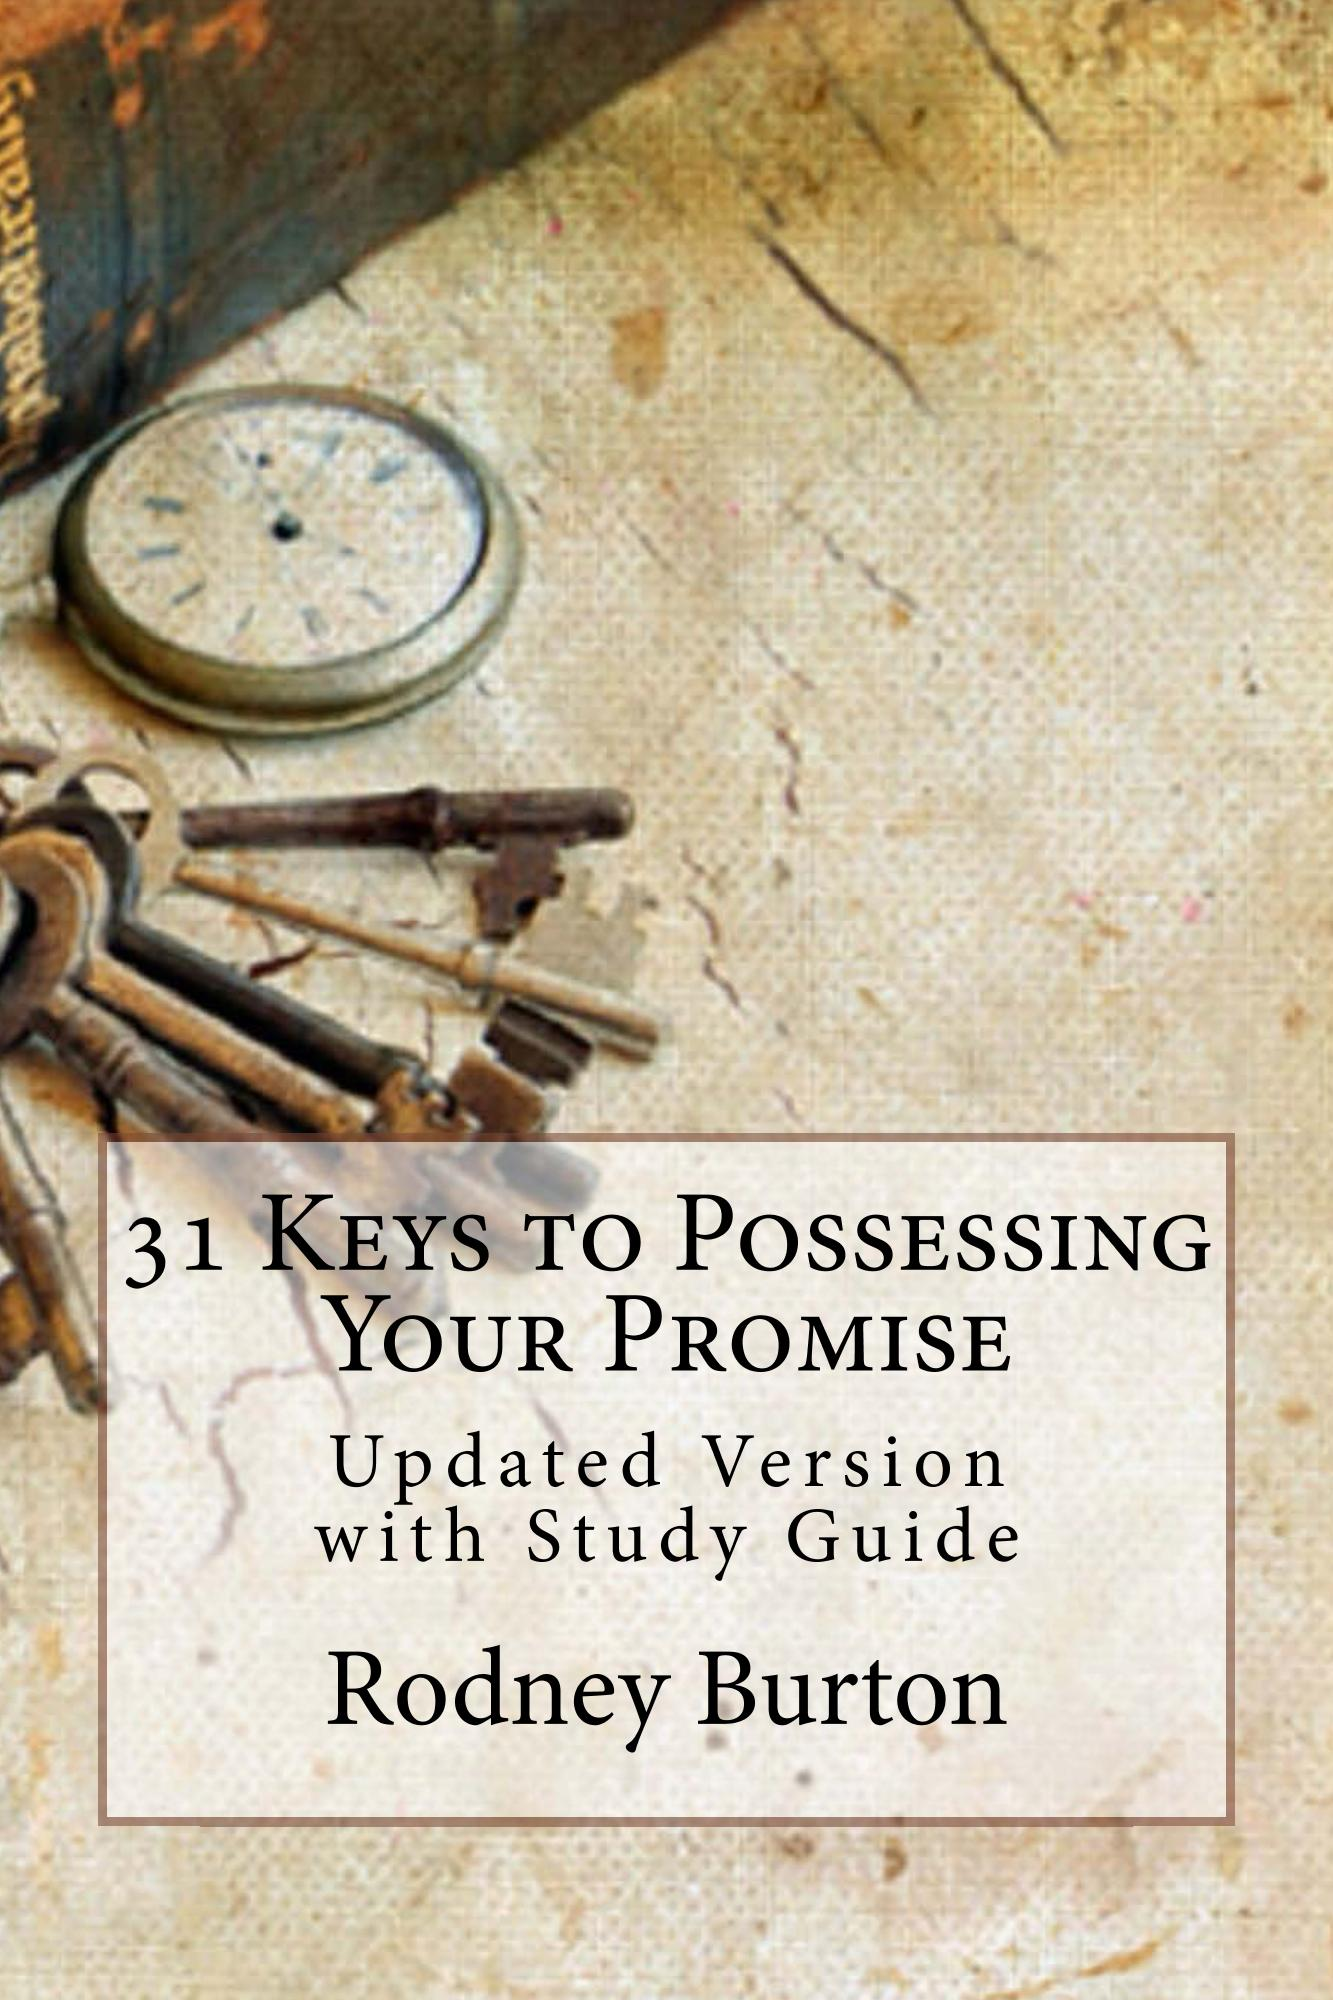 31 Keys to Possessing Your Promise